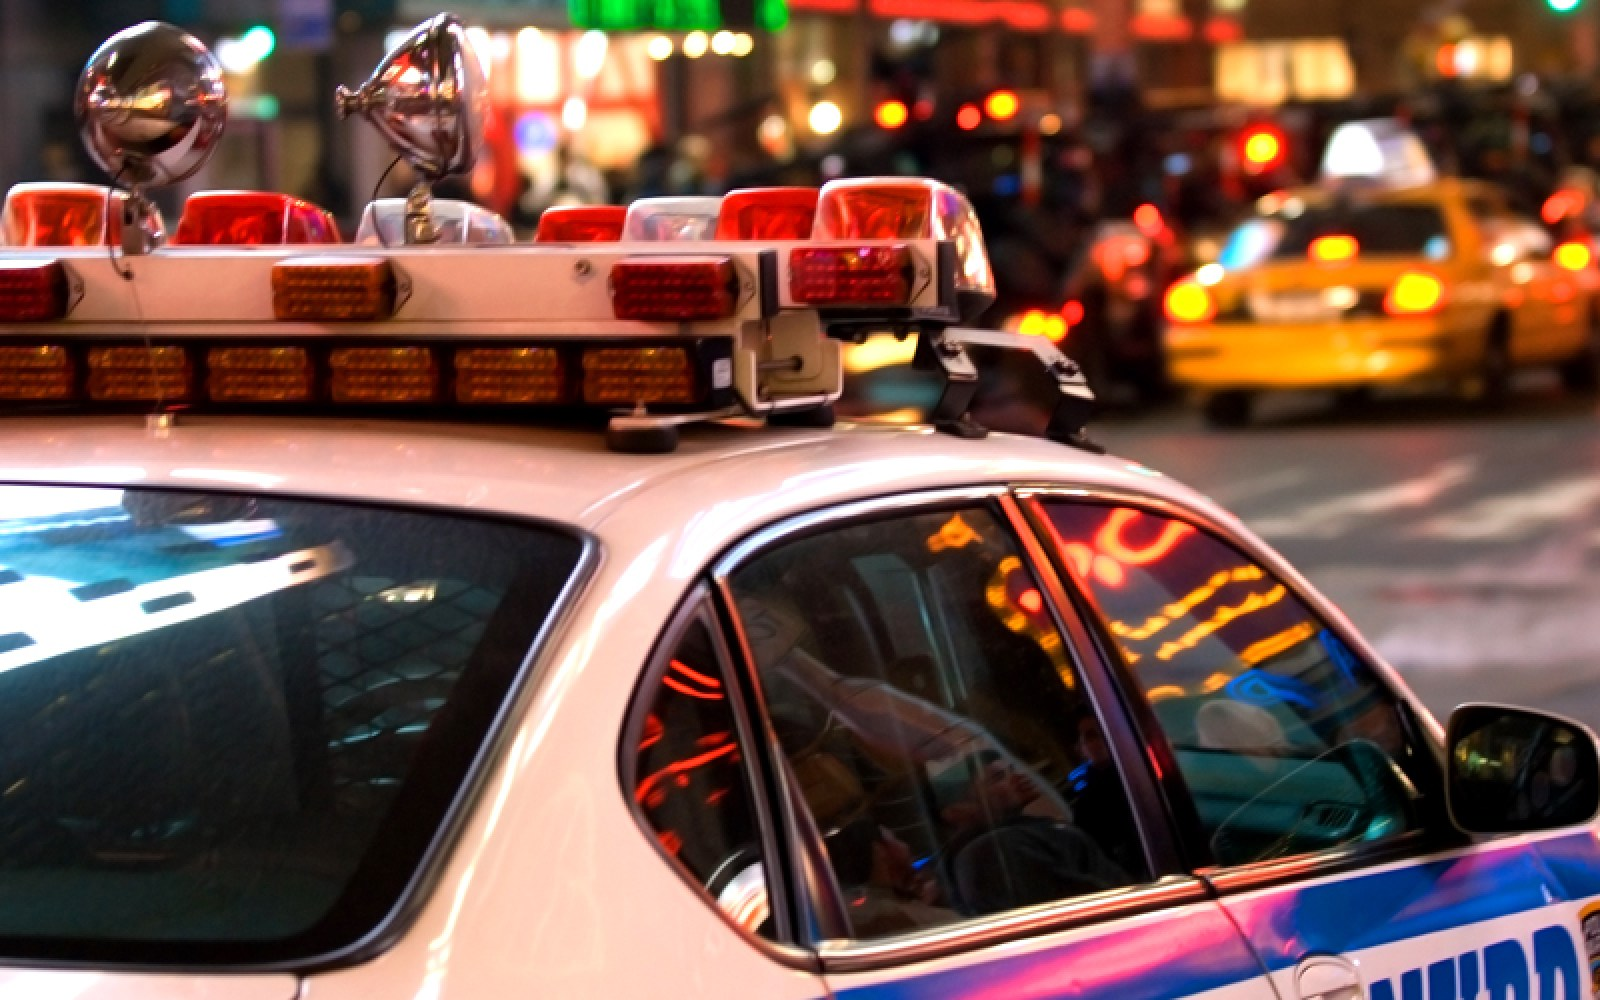 Cellebrite could give NY cops the ability to partly hack phones to check for text-driving